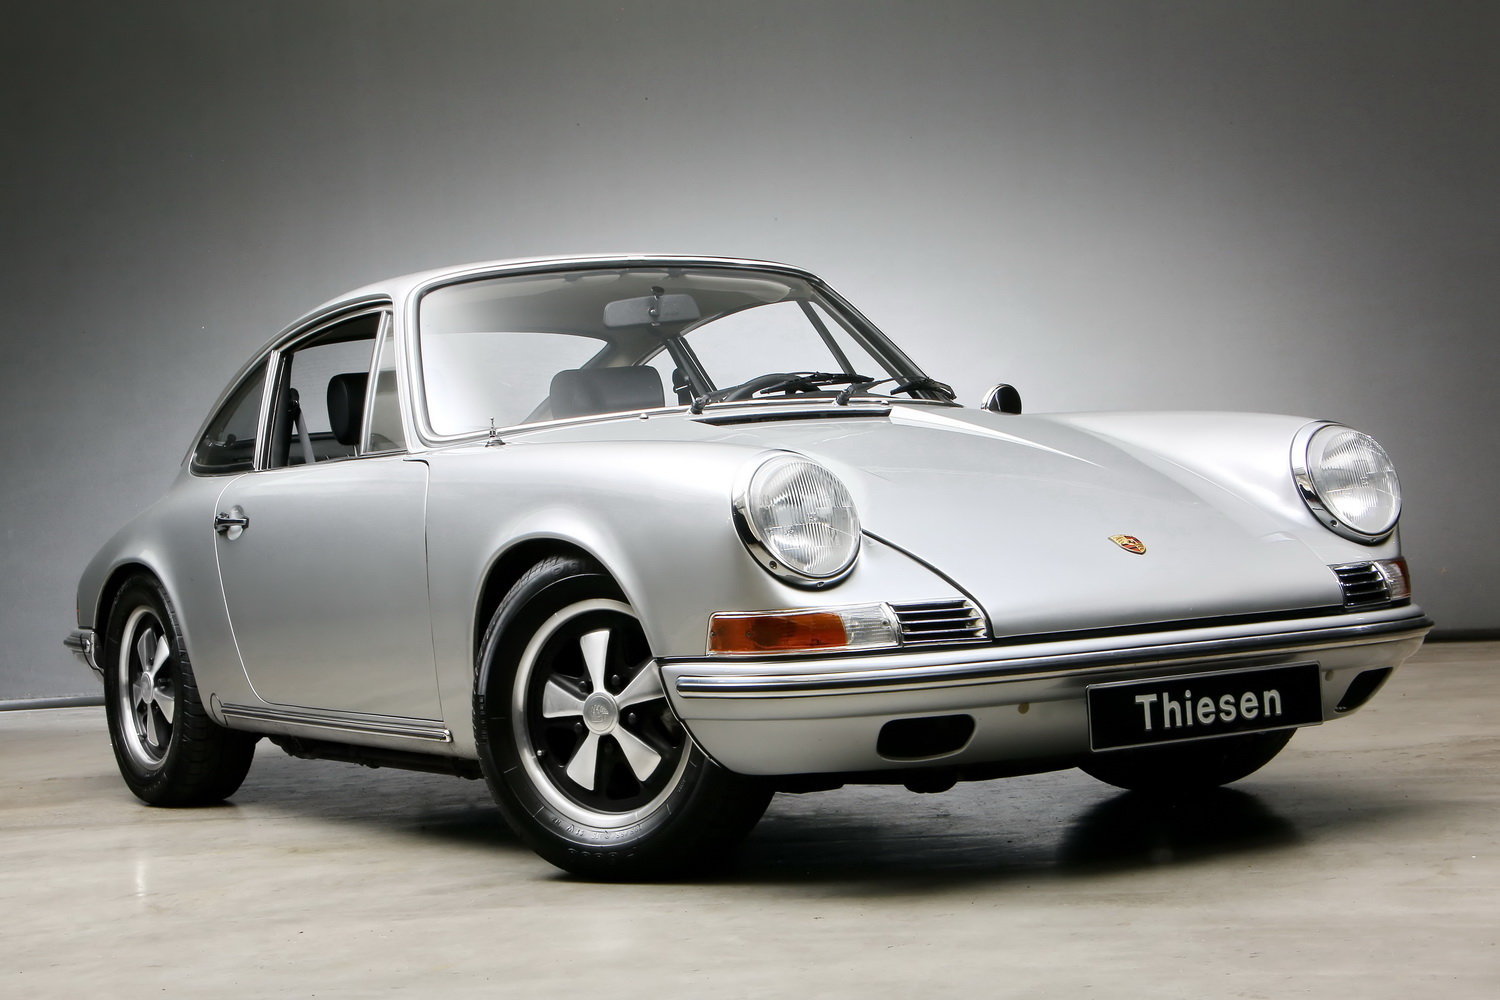 1970 911T 2.2 Ltr. Coup - Individualumbau - For Sale (picture 5 of 12)